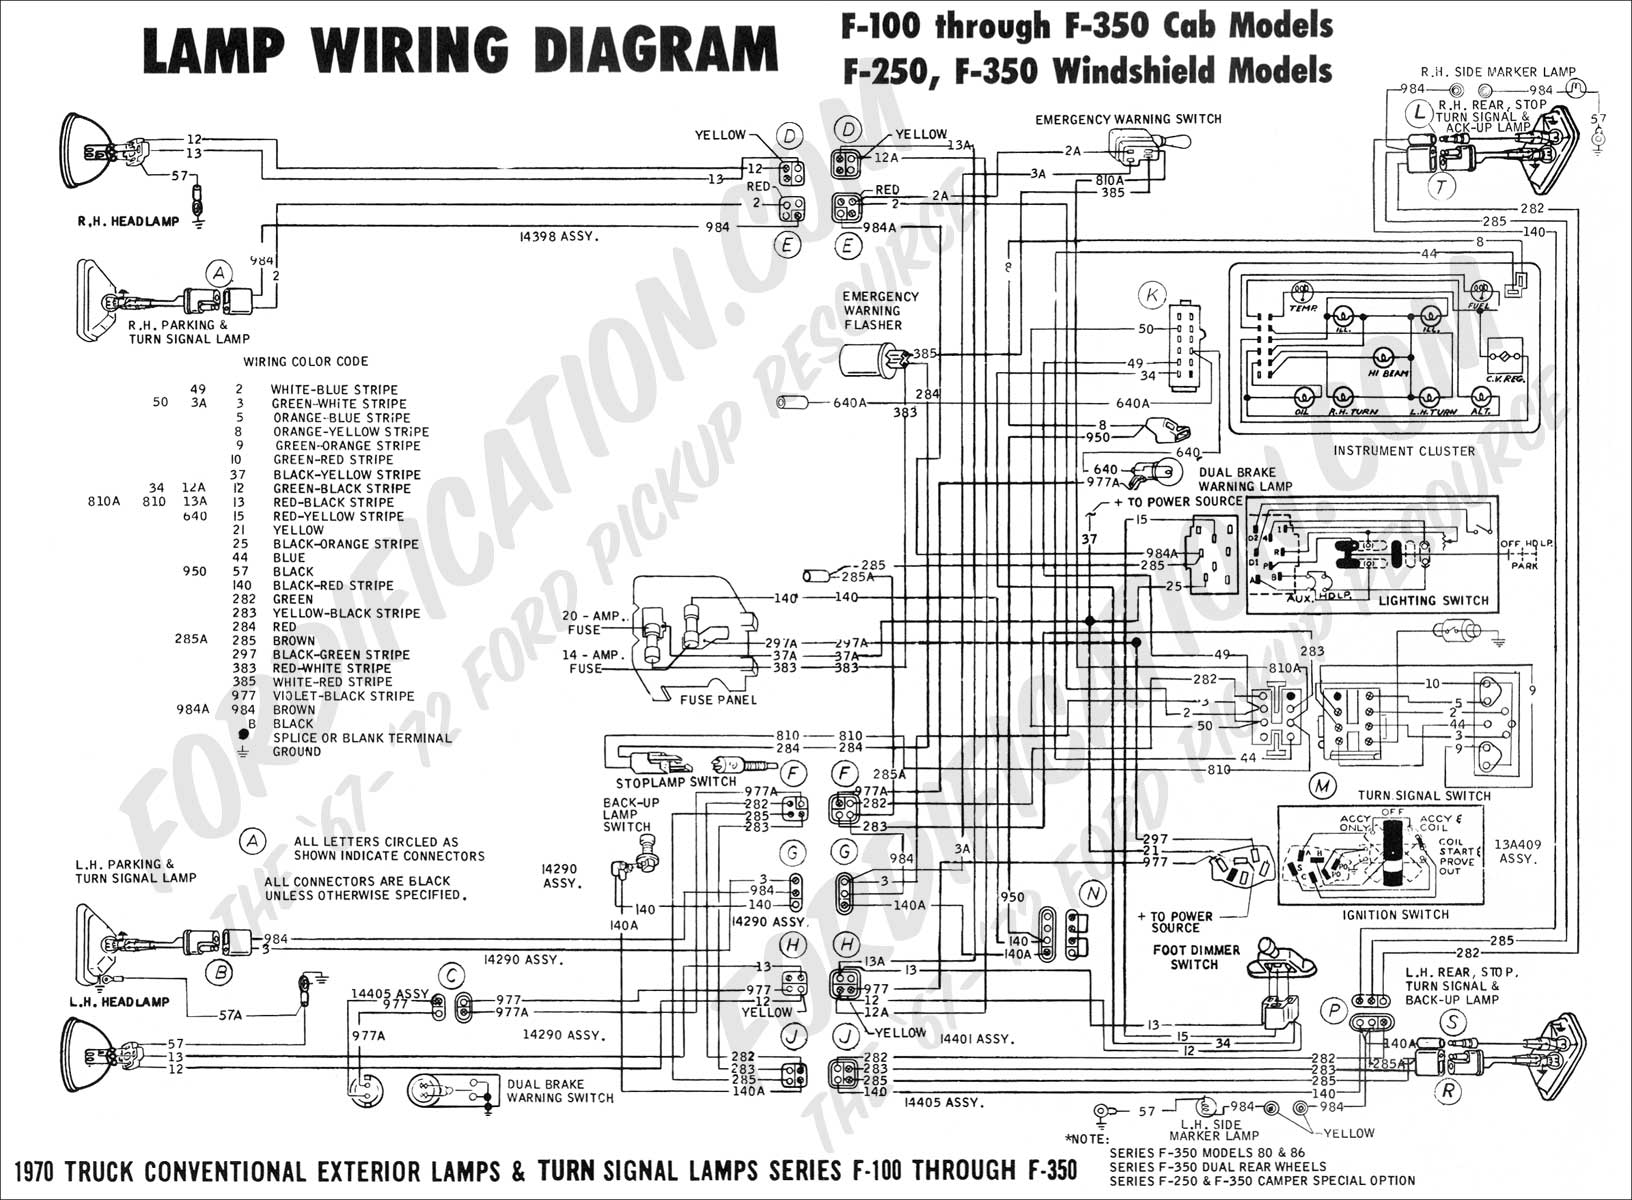 1975 ford truck wiring diagrams just wiring data rh ag skiphire co uk 1970 ford  f100 ignition switch wiring diagram 1970 f100 dash wiring diagram